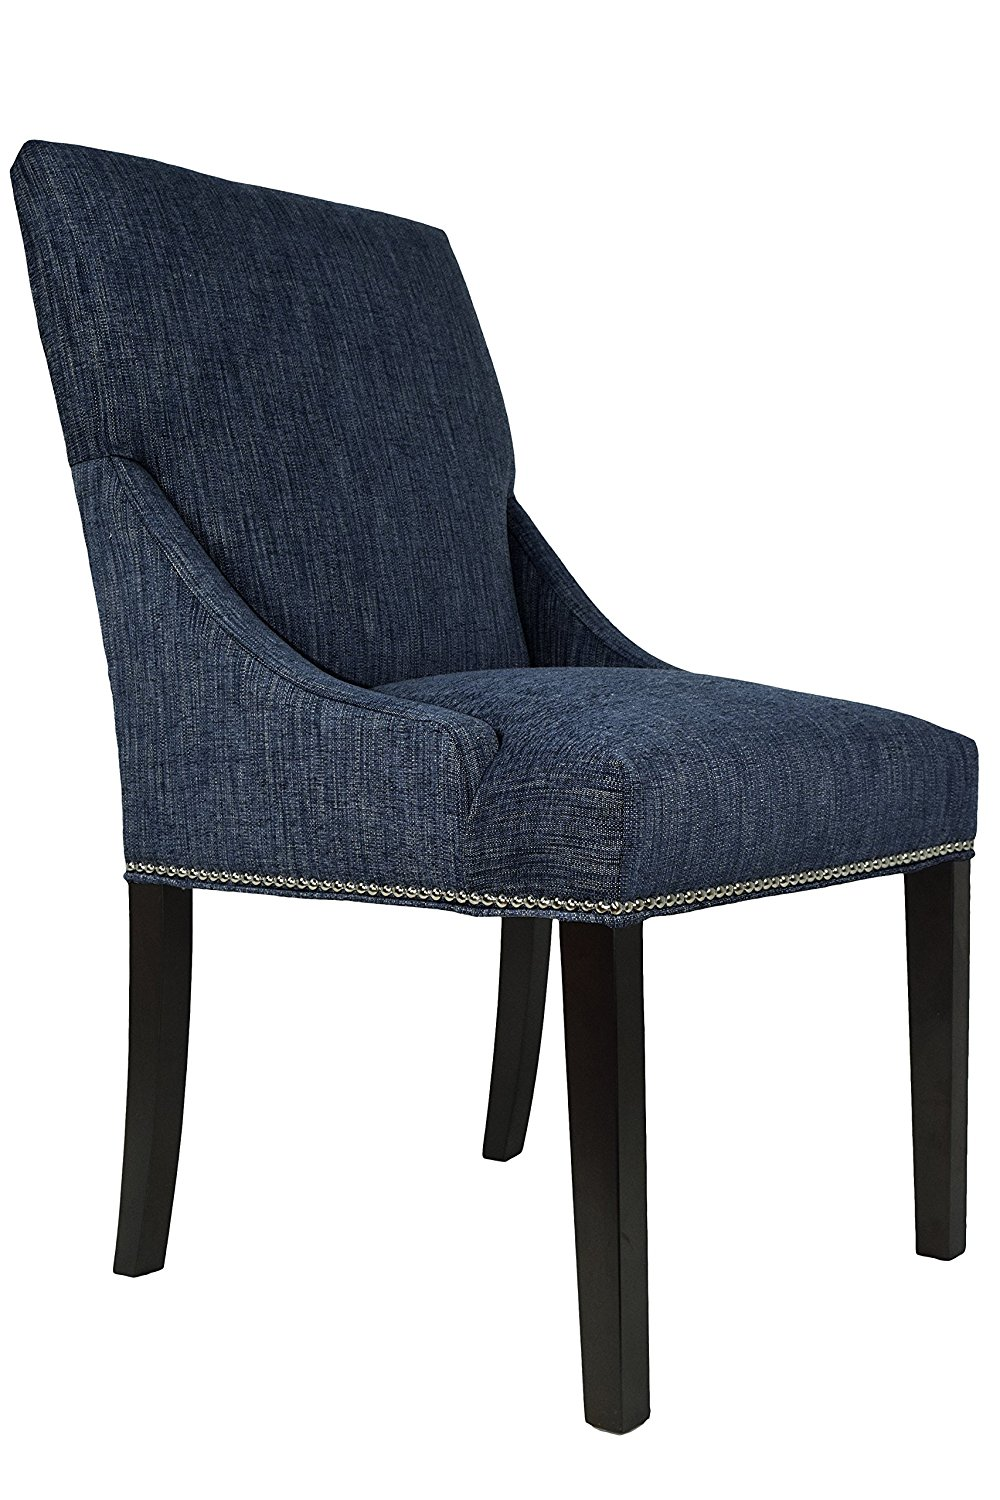 Sole Designs, Inc. Sole Designs Marie Collection Lucky Upholstered Spring Seat Double Dow Dining Chairs (Set of 2) with Nailhead Trim, Denim